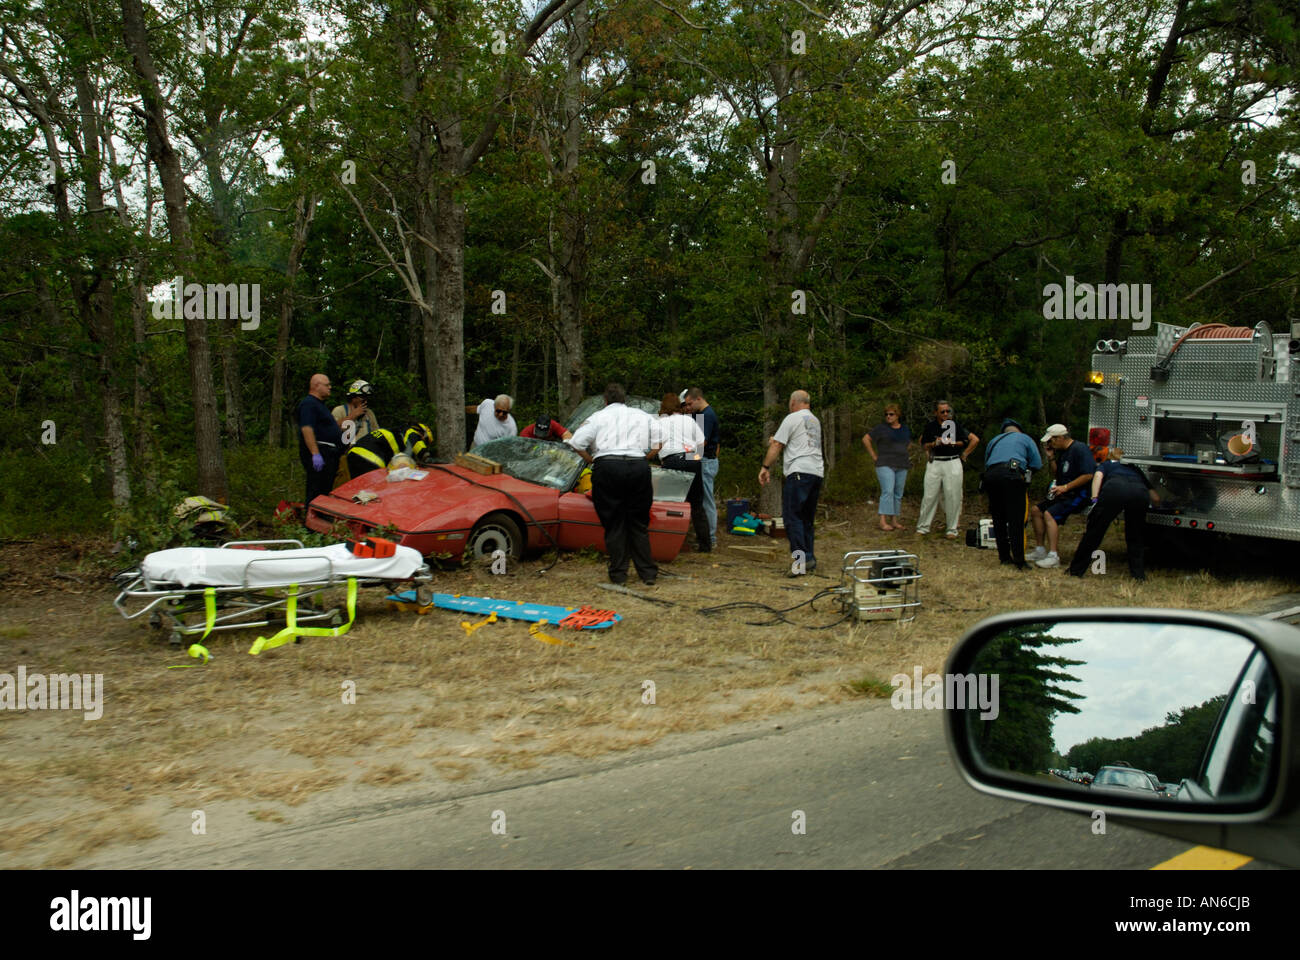 Emergency workers responders at scene of car accident - Stock Image